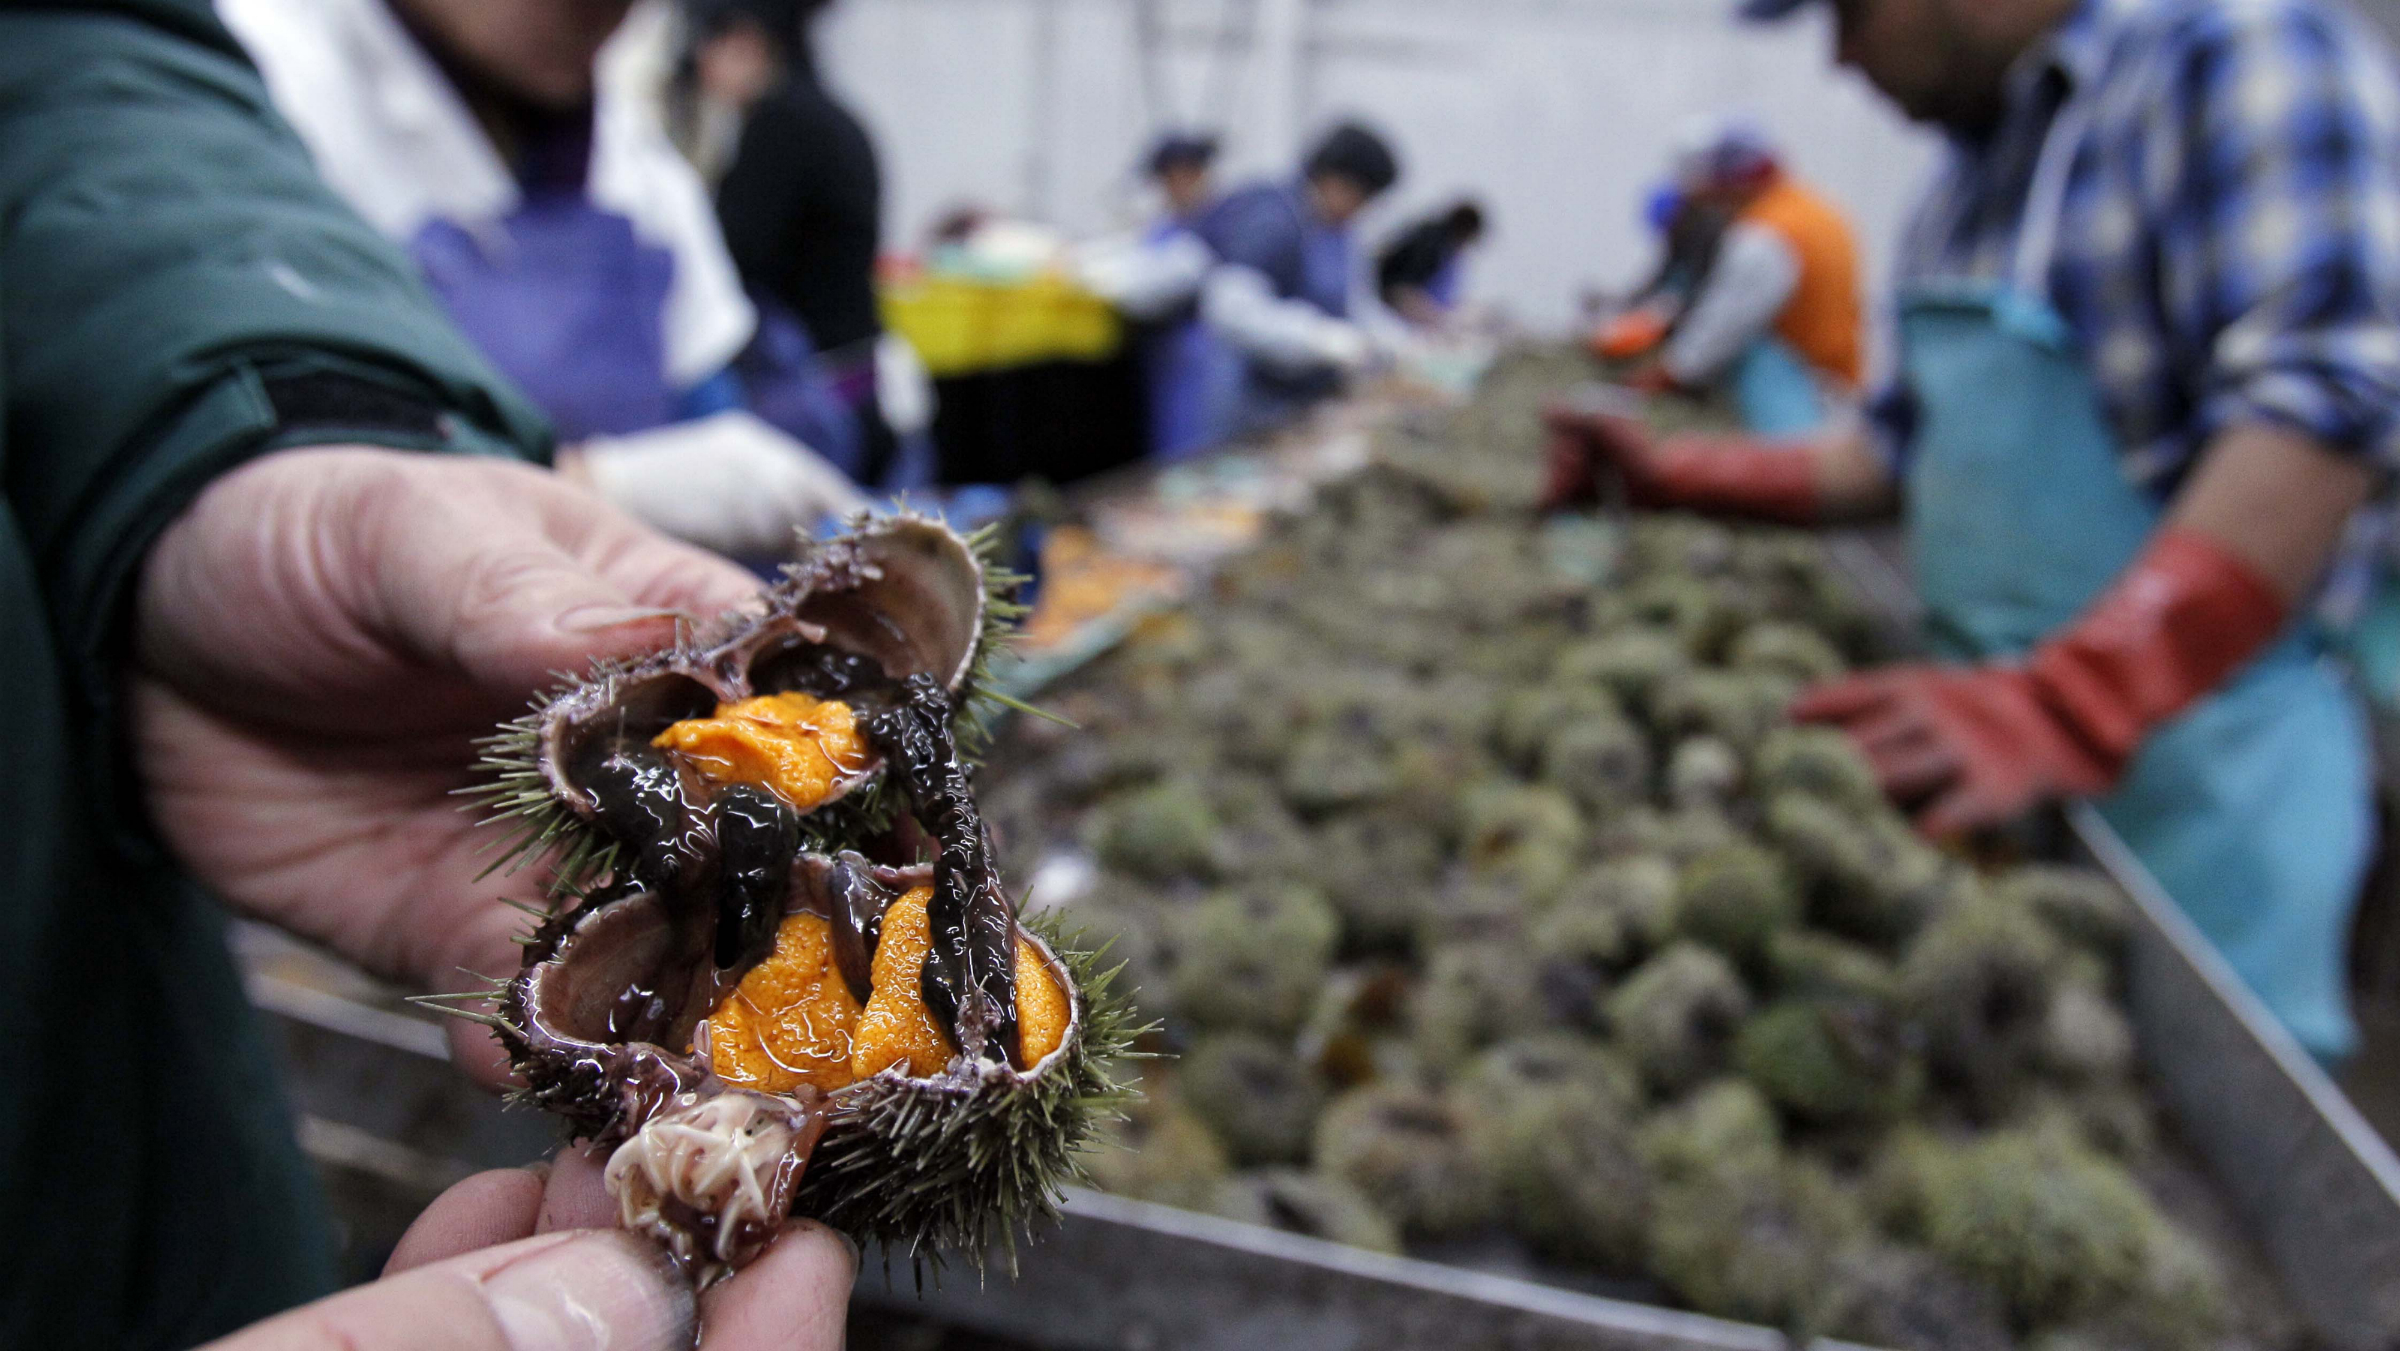 In this Dec. 22, 2011 photo, orange roe is seen inside a sea urchin at a processing facility in Portland, Maine. During the heyday, Maine urchin fishermen harvested more than 40 million pounds of the spiny creatures a year. A move is now under way to jumpstart the industry, which has fallen on hard times. (AP Photo/Robert F. Bukaty